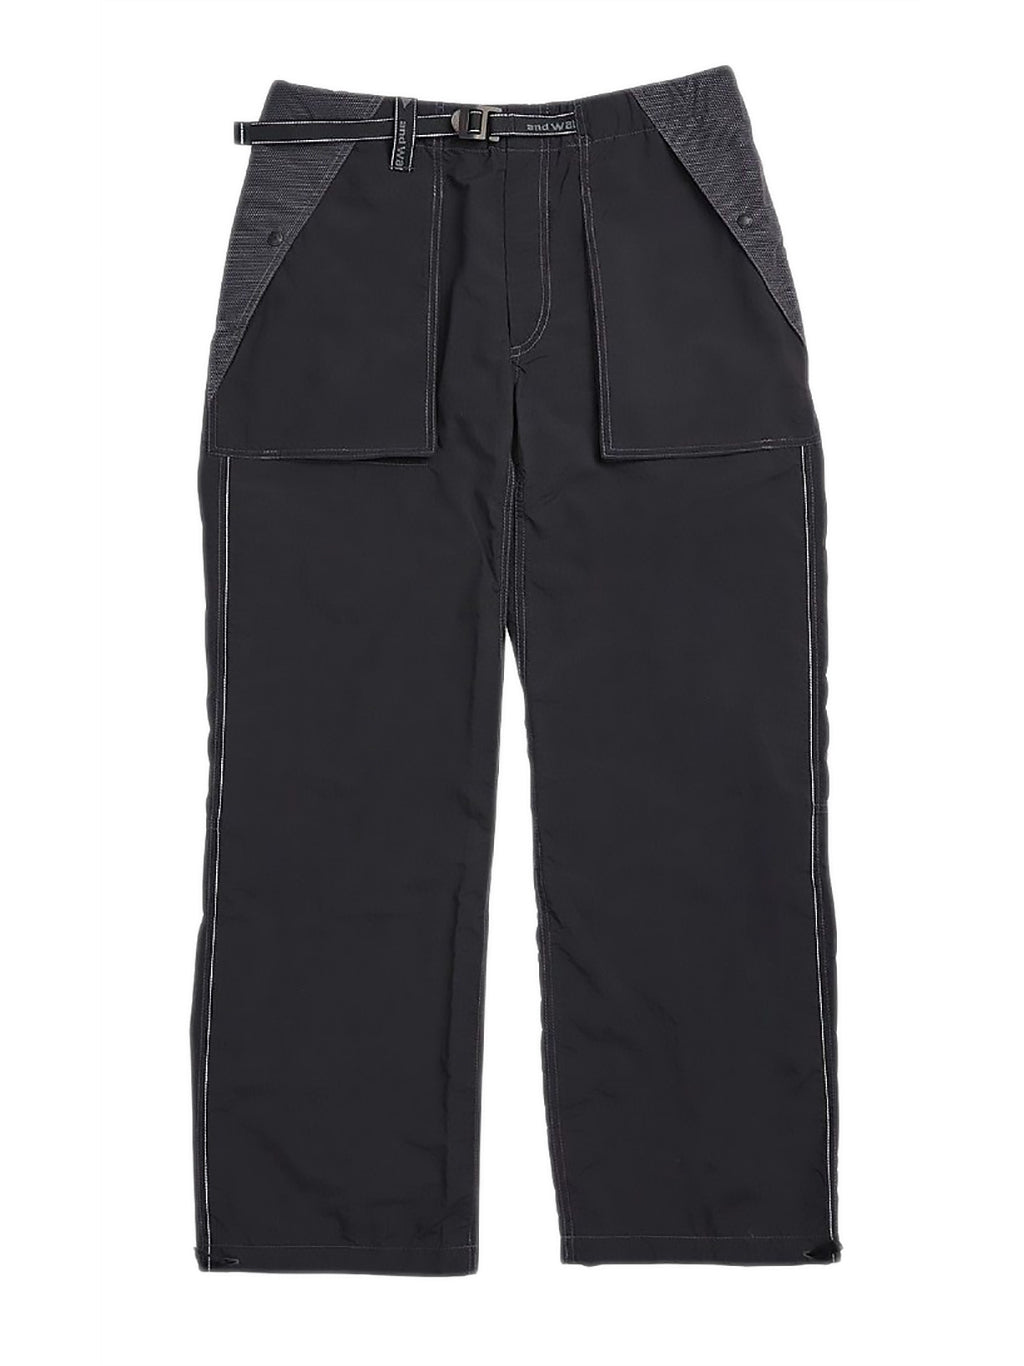 Black Drawstring Cuffs Pants